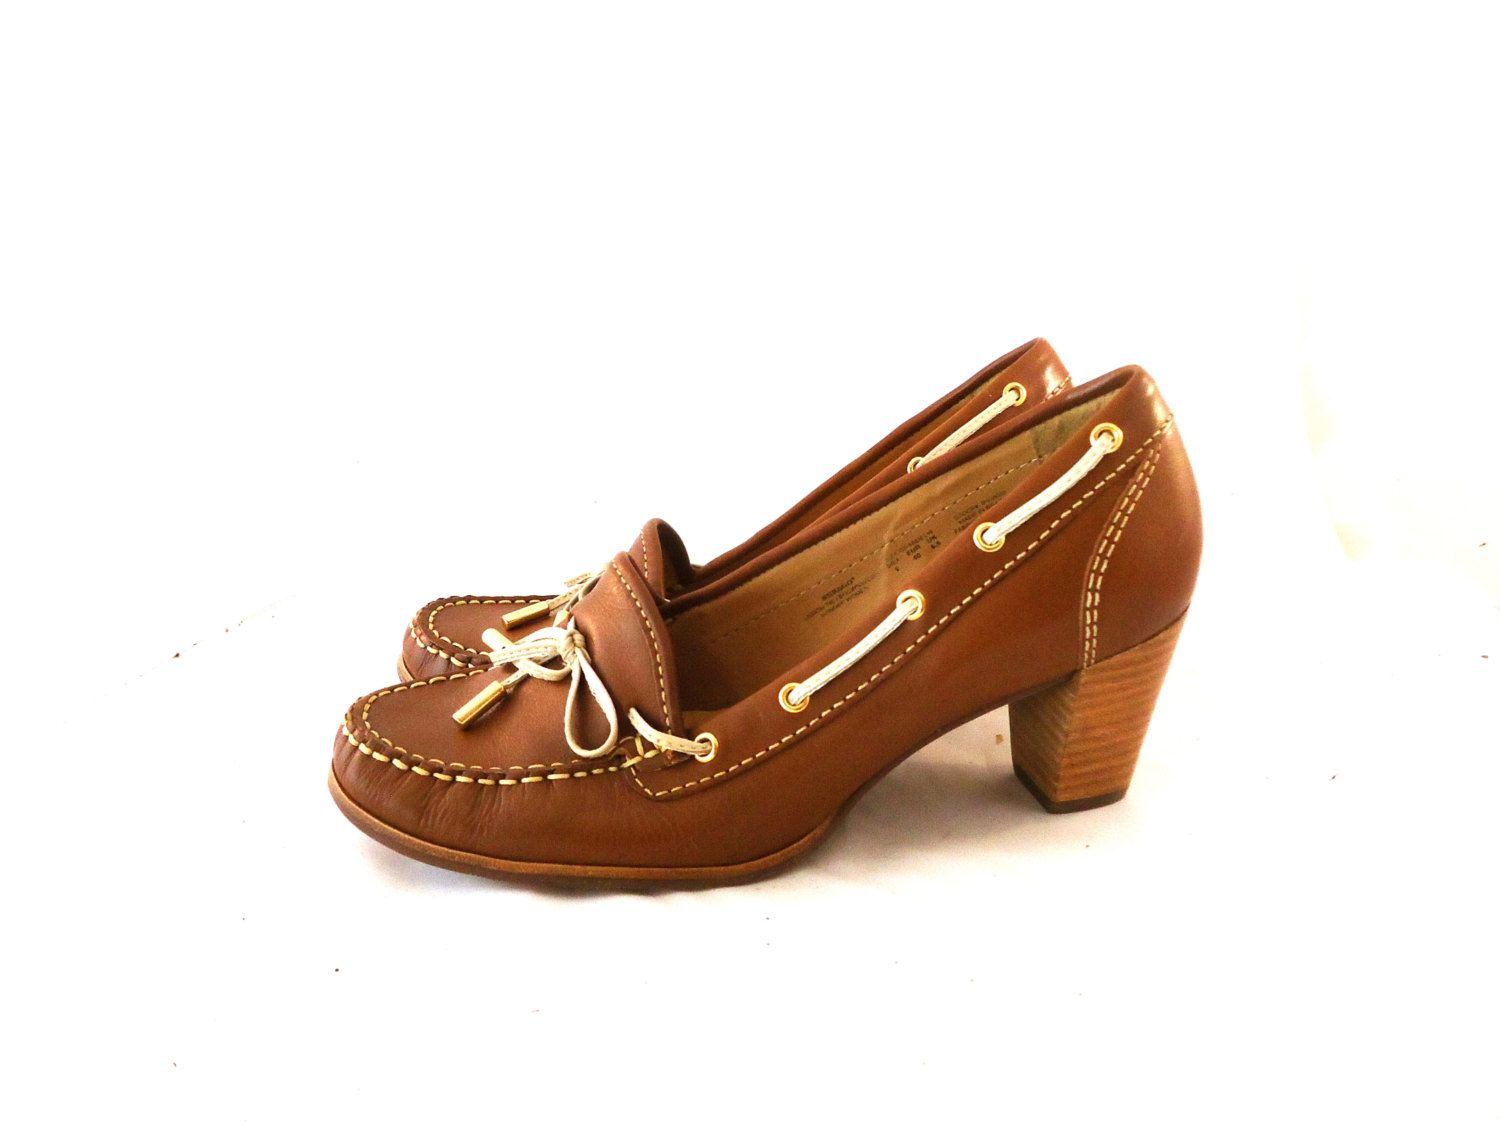 b6aa7527263 Unworn New 70s 80s Sebago Cognac Leather Moccasin w  Chunky Stacked Wood Heel  Shoes Size 8M 40 by aintweswank on Etsy